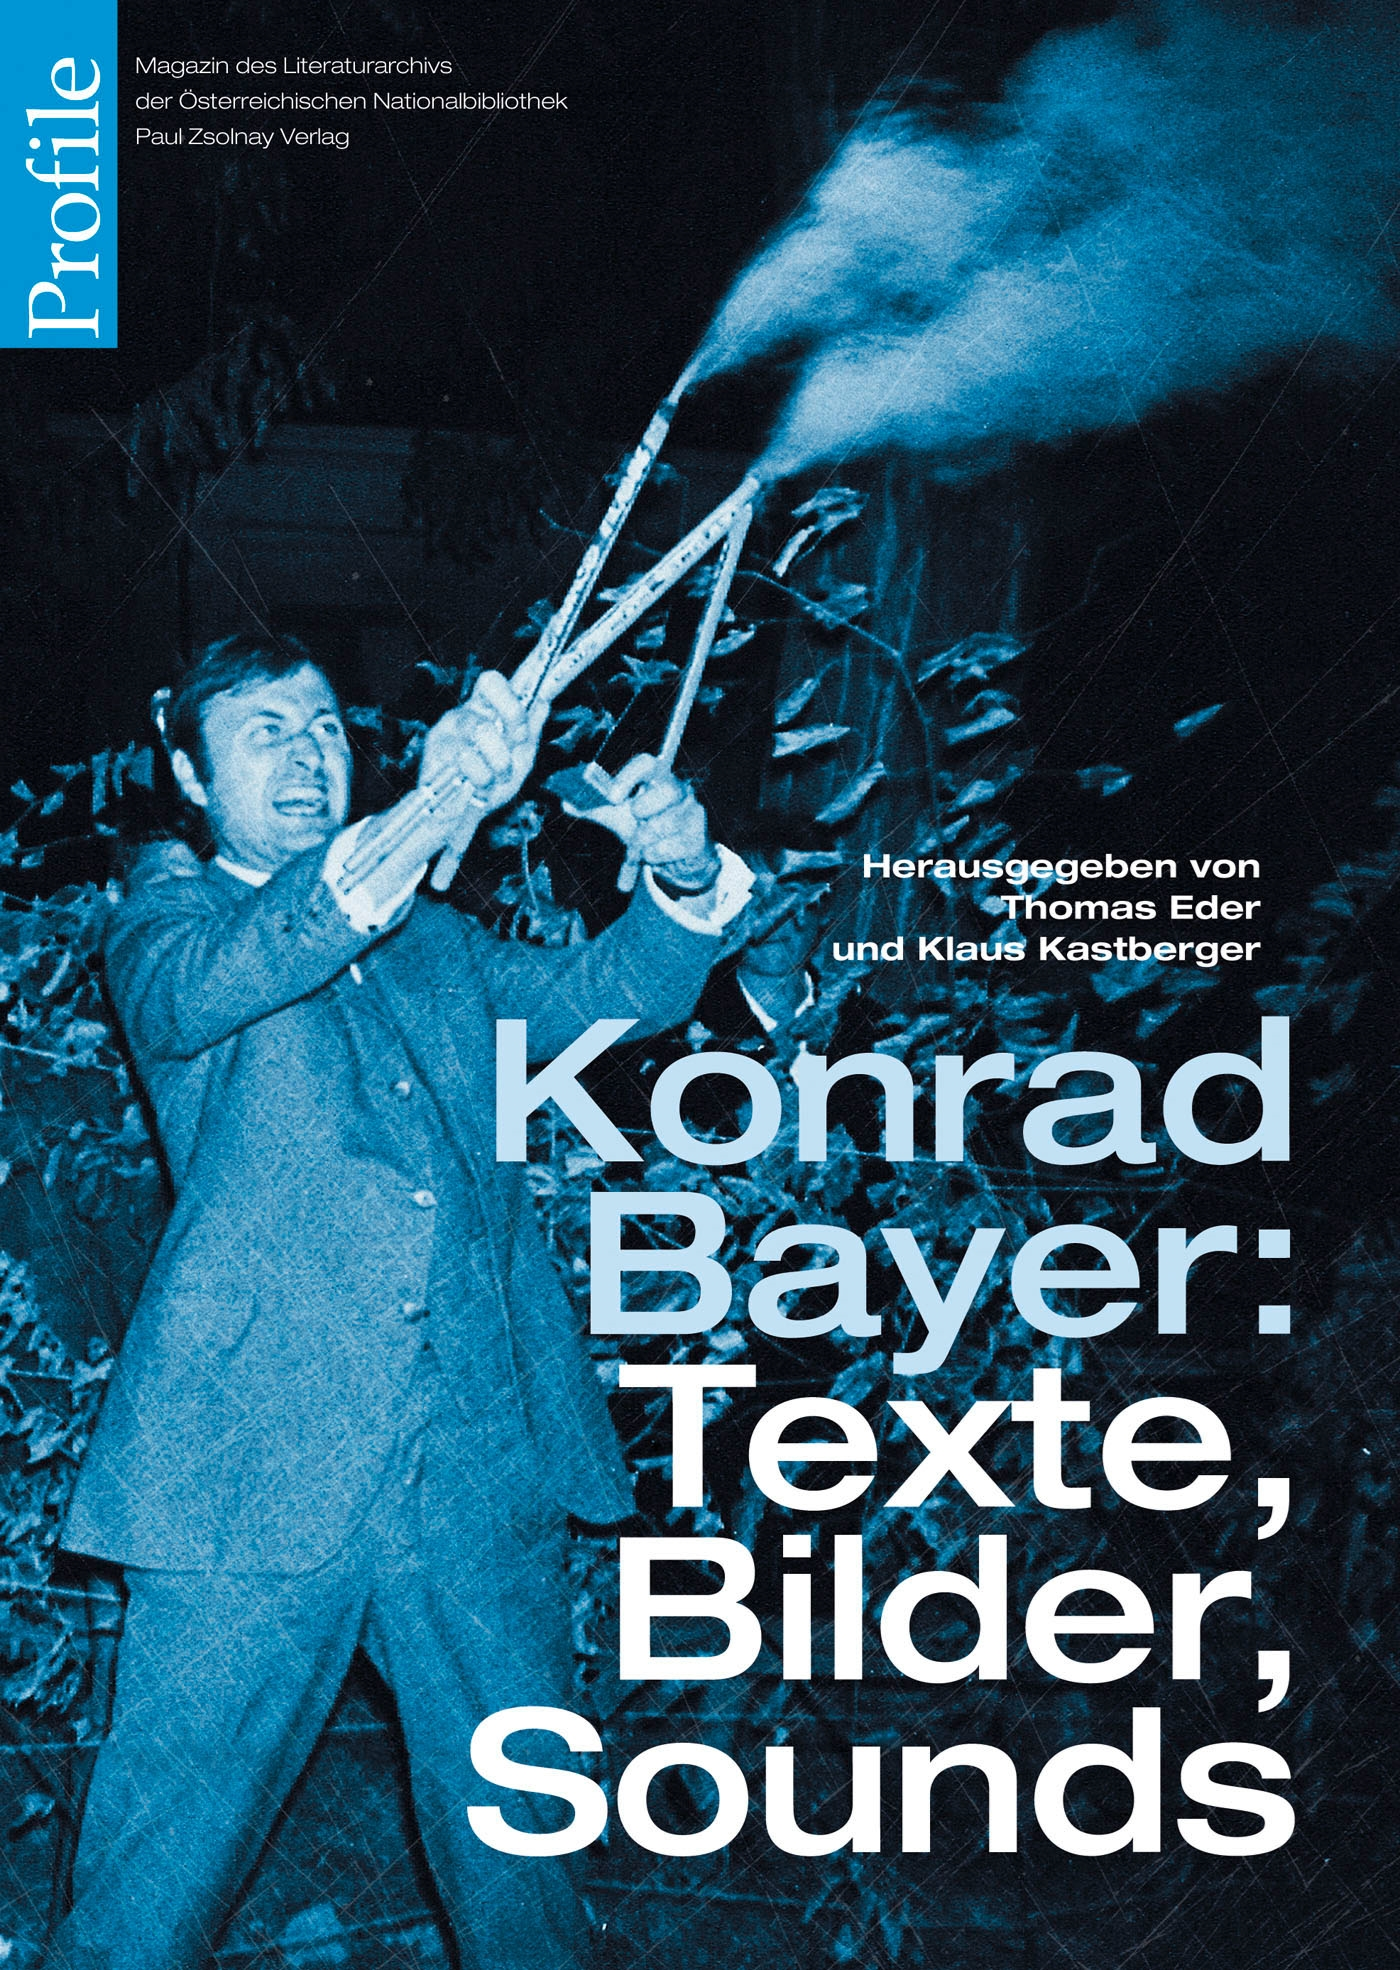 Konrad Bayer: Texte, Bilder, Sounds